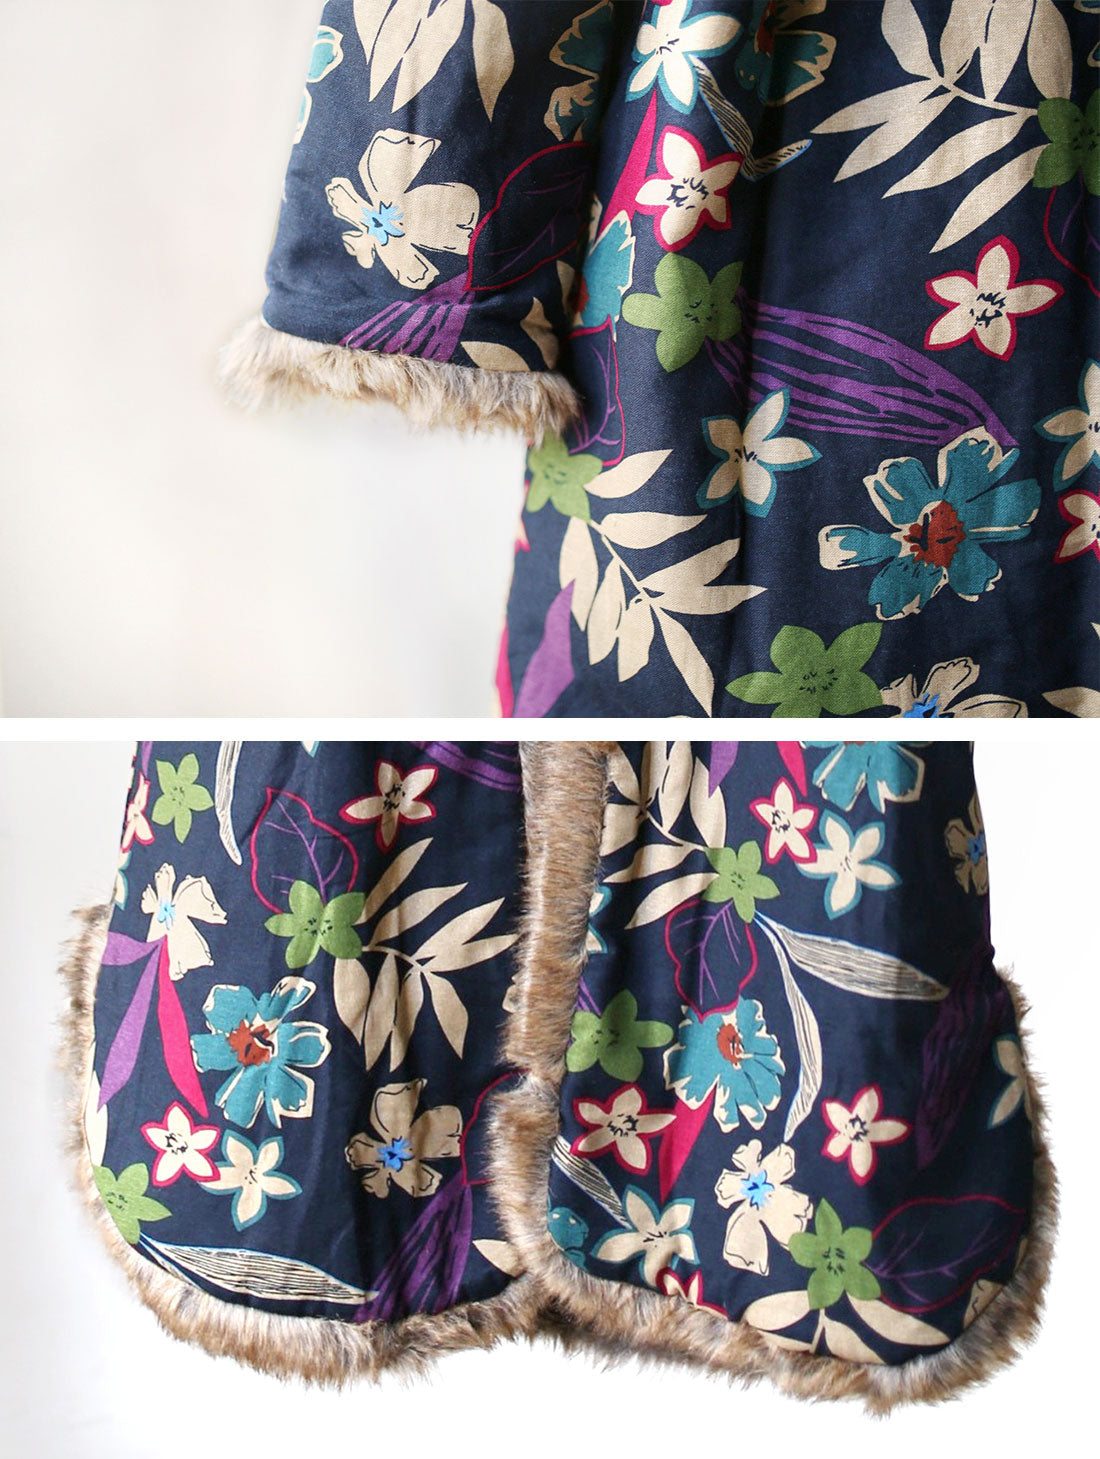 Floral Printed Hooded Cotton Coat Details 2